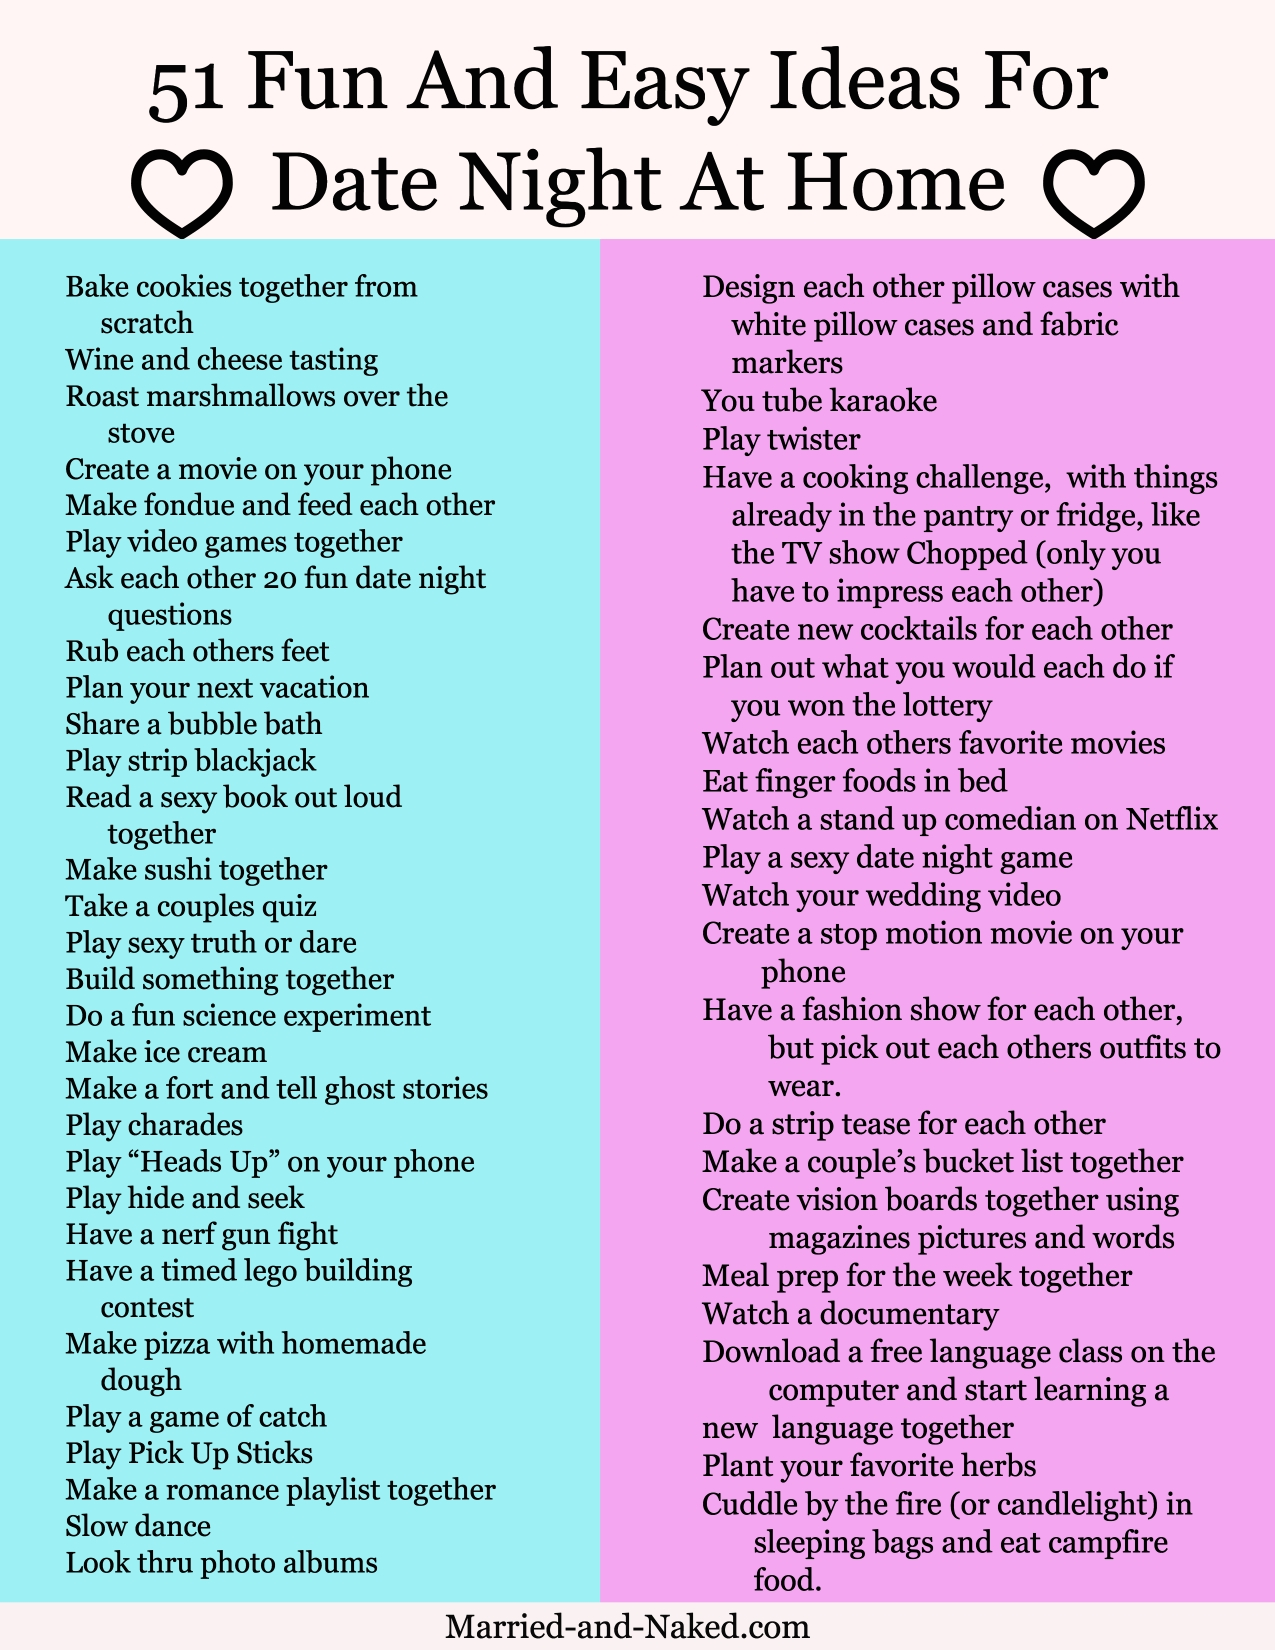 10 Lovable Date Ideas For Married Couples date night questions for married couples married and naked idee 3 2021